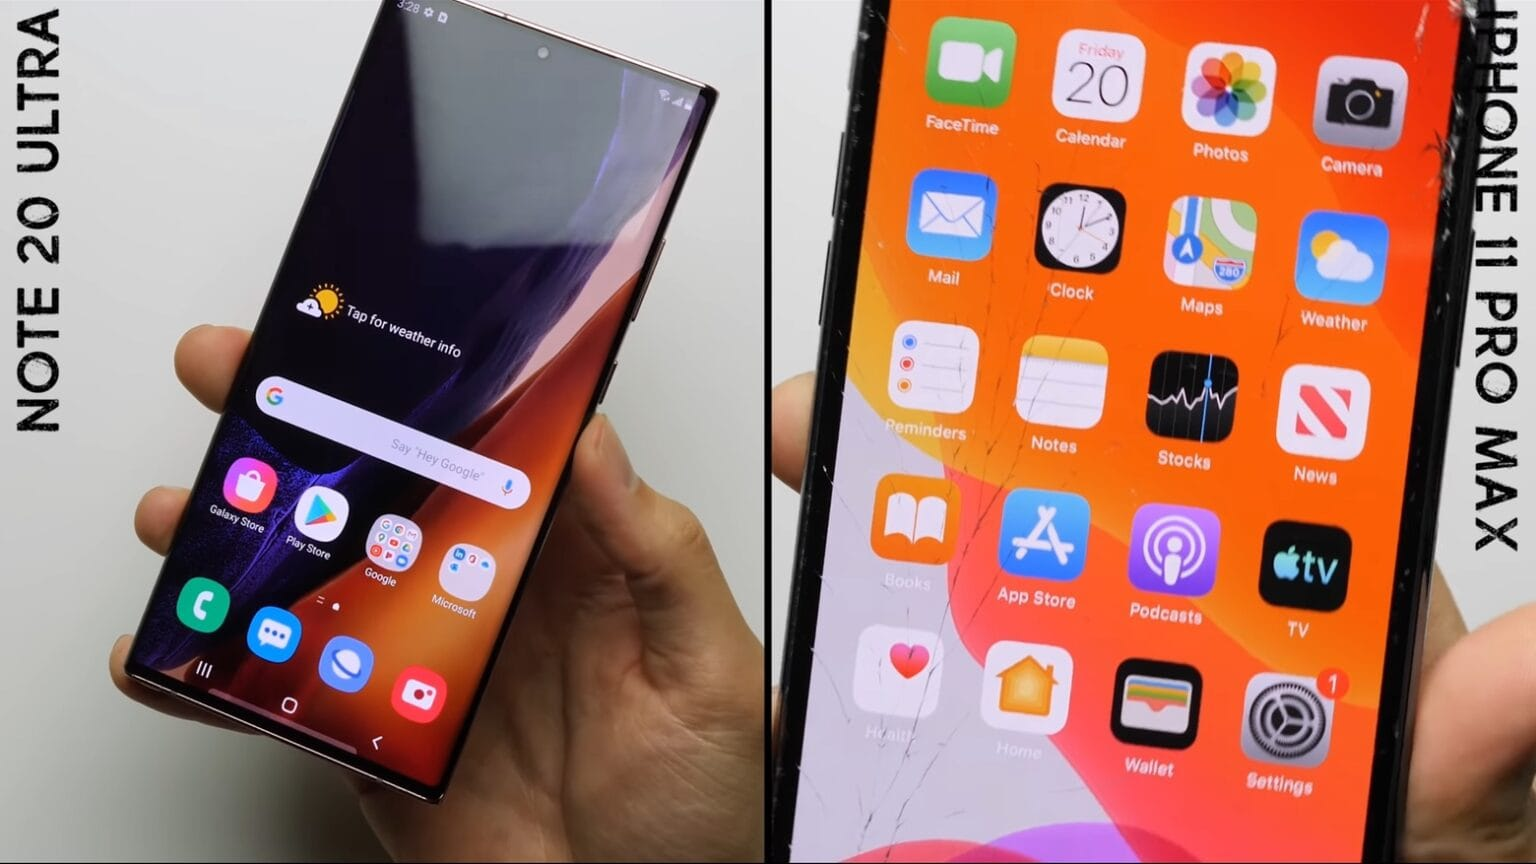 Samsung Galaxy Note 20 Ultra vs. Apple iPhone 11 Pro Max drop test